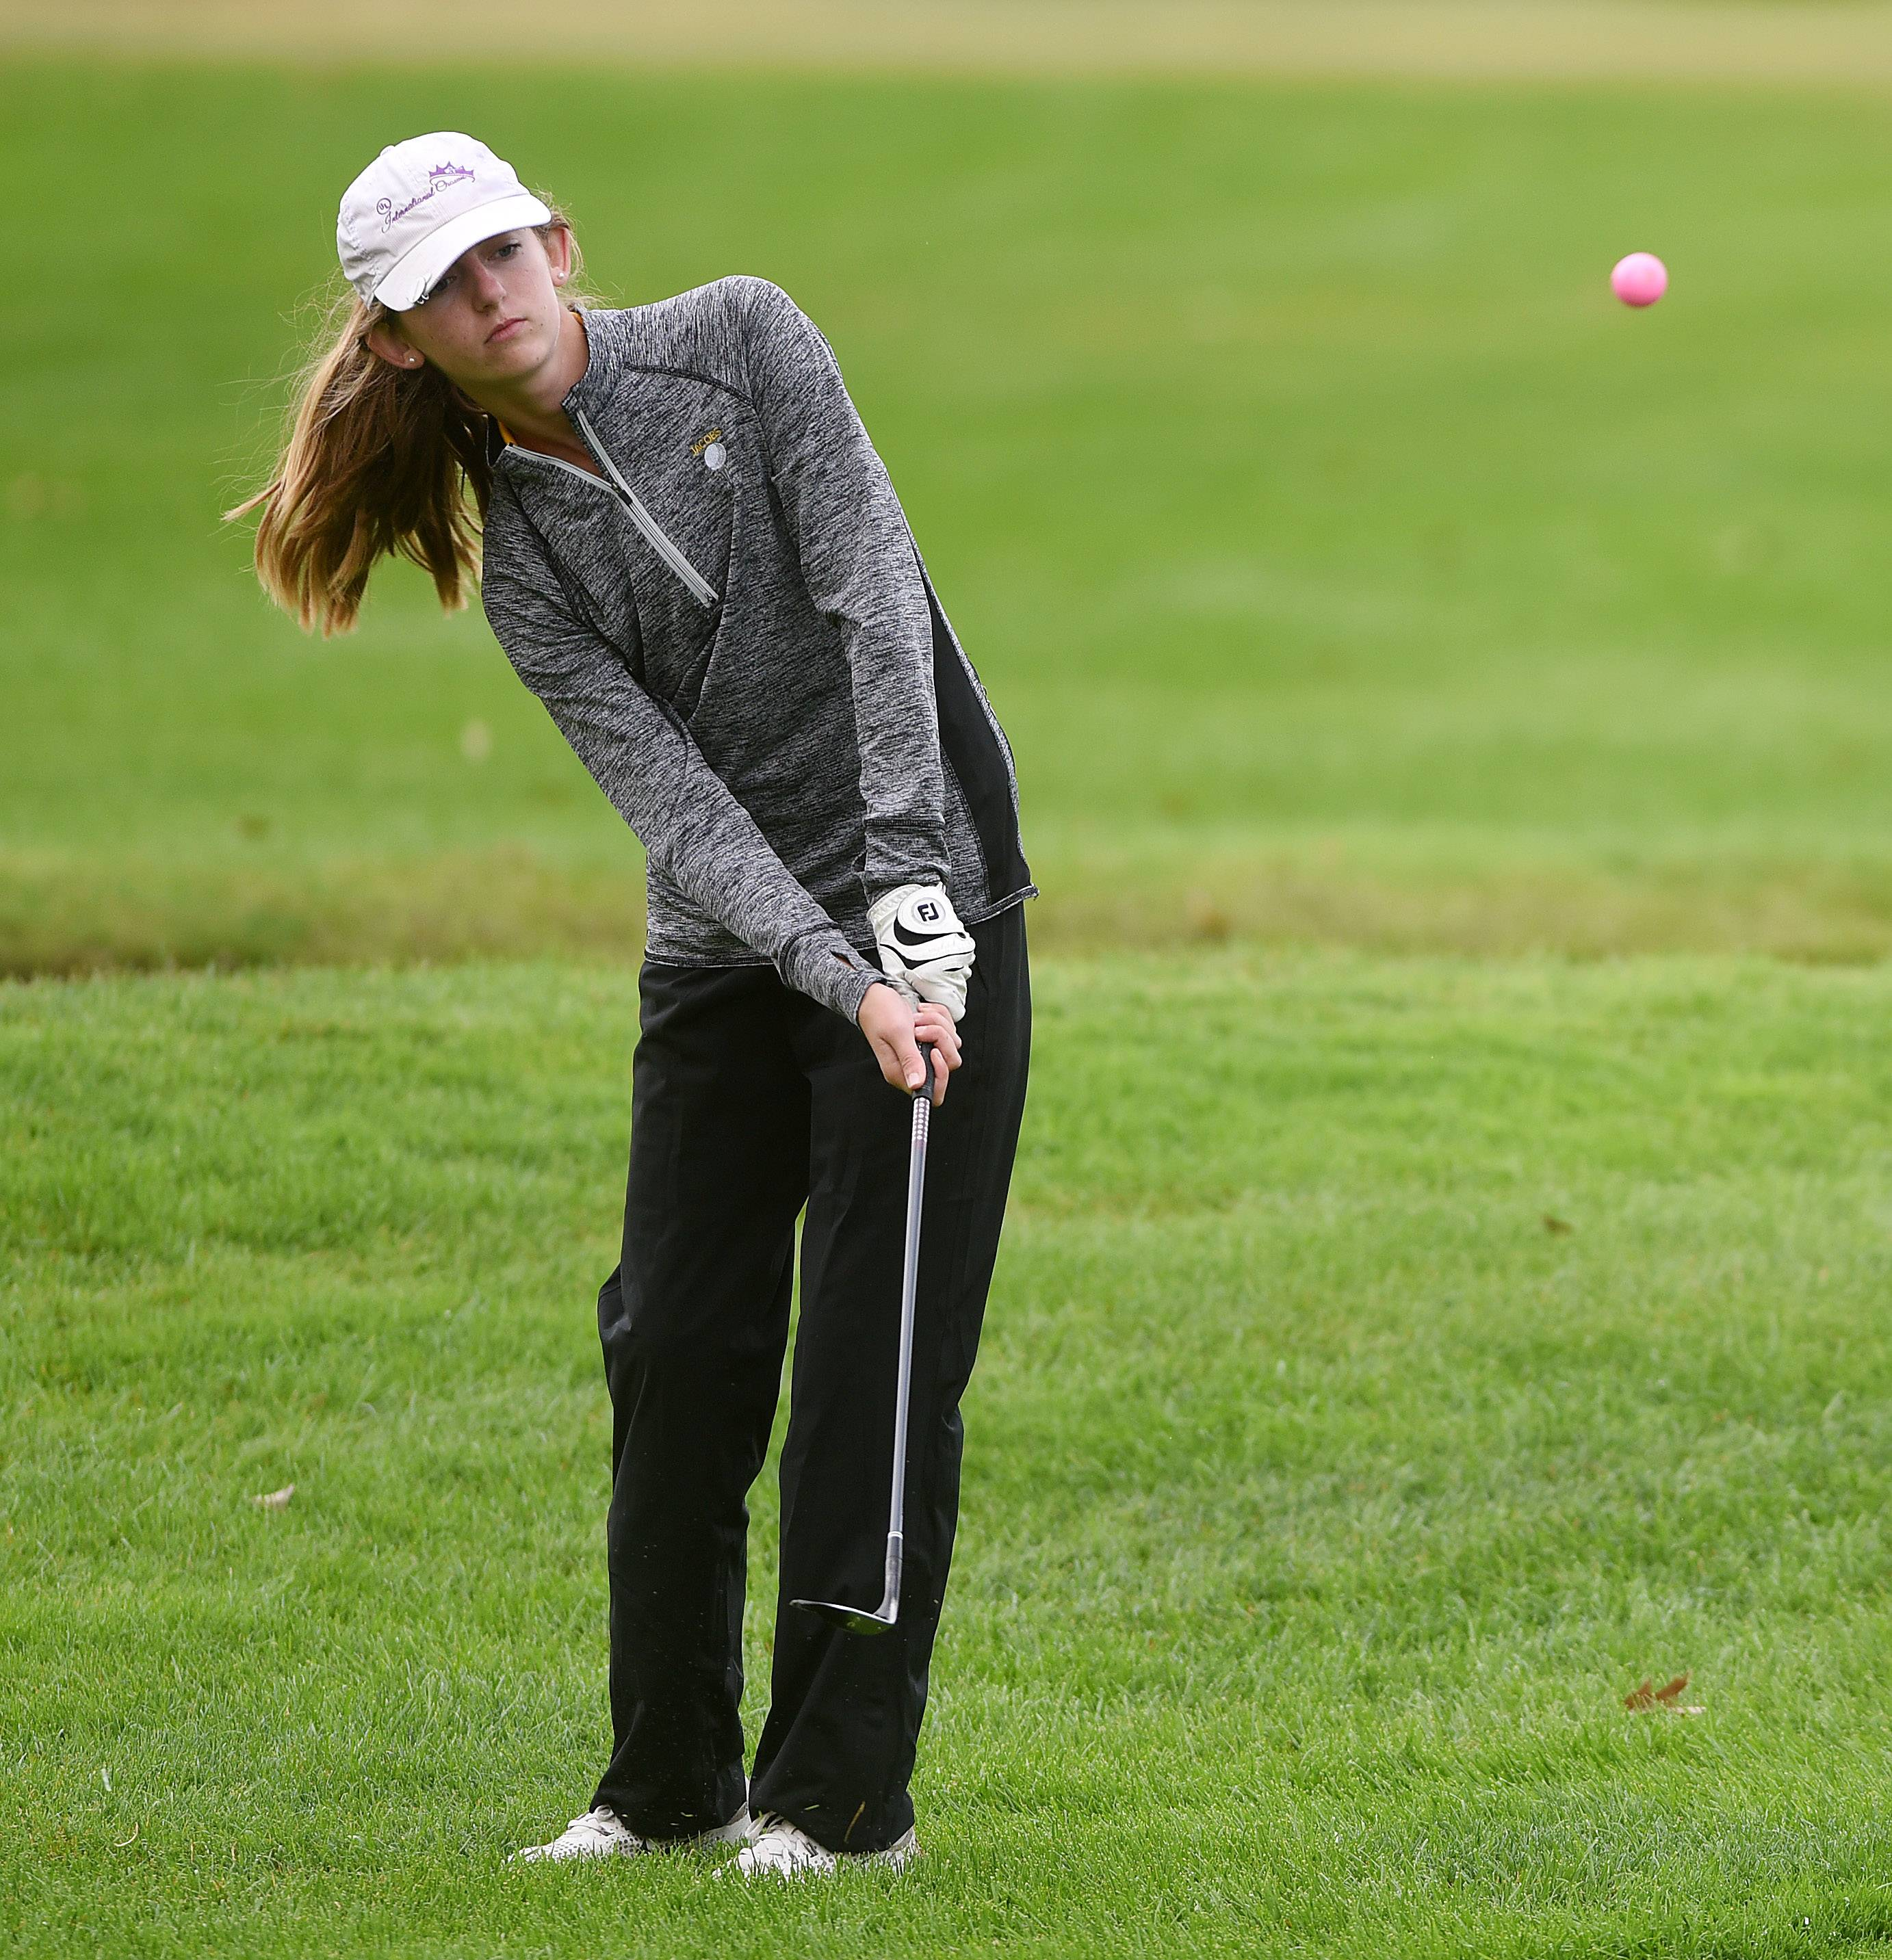 Lauren Kempf of Jacobs chips on to the green during the Burlington Central girls golf regional at Sycamore Golf Club Wednesday.